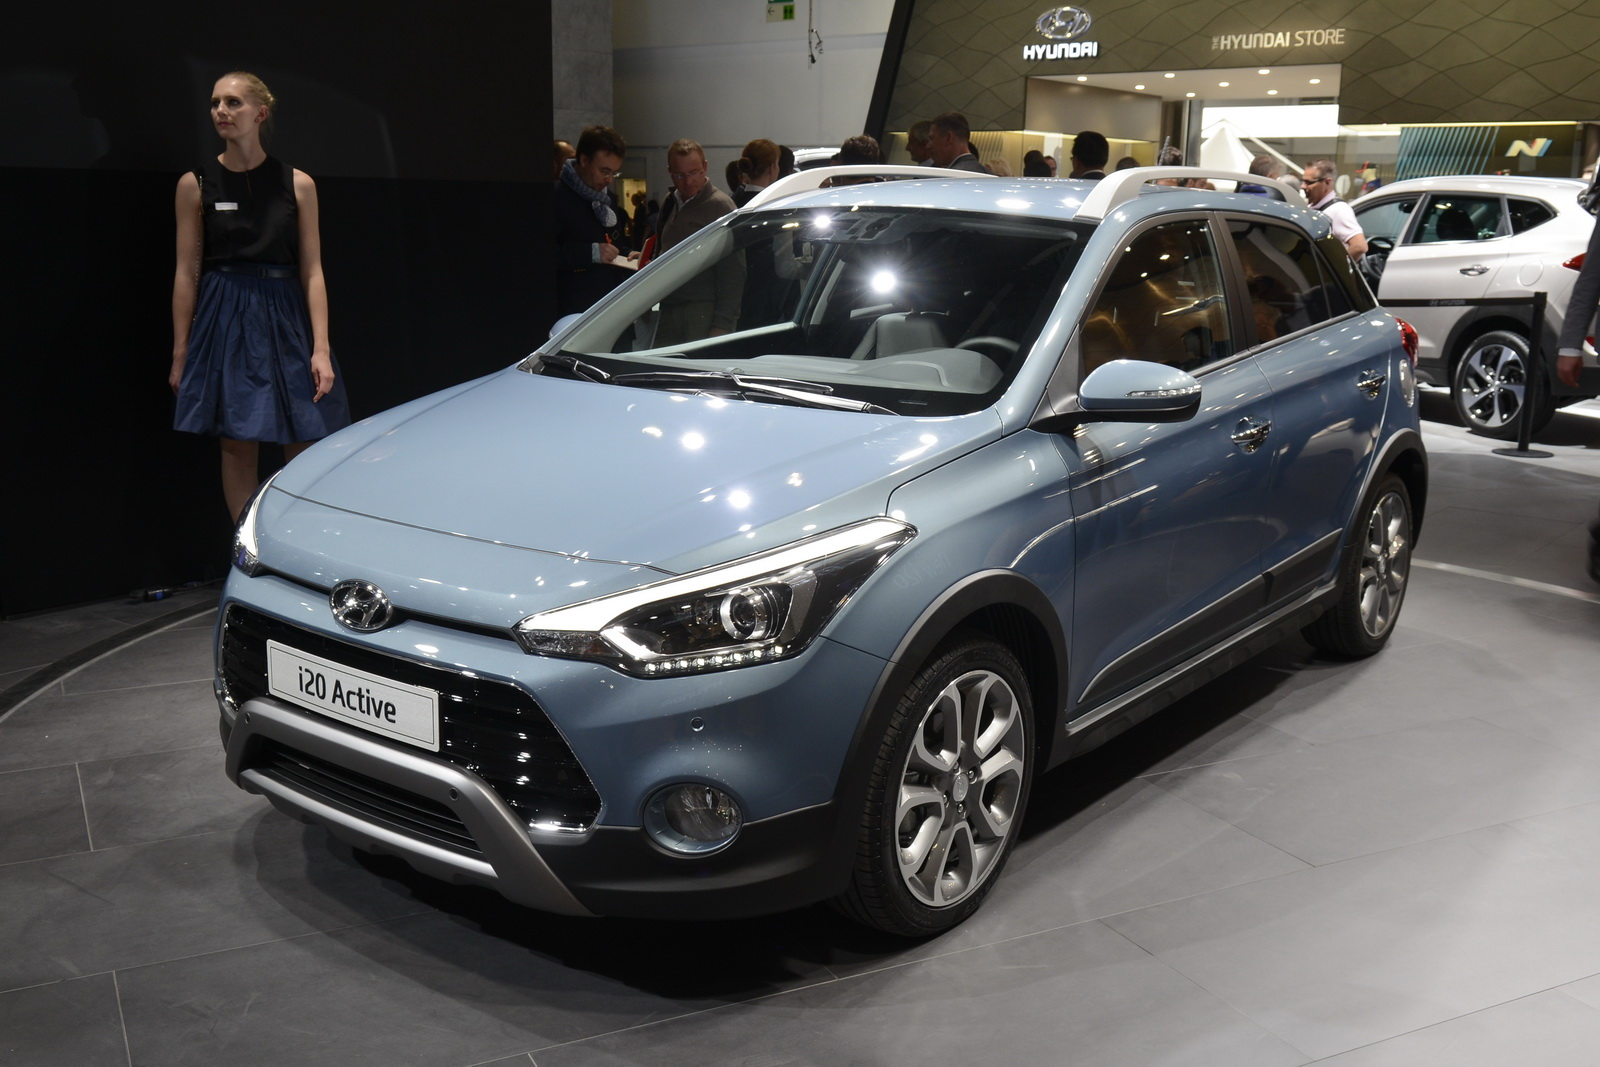 hyundai i20 active debuts along with new turbo 1 0l engine. Black Bedroom Furniture Sets. Home Design Ideas